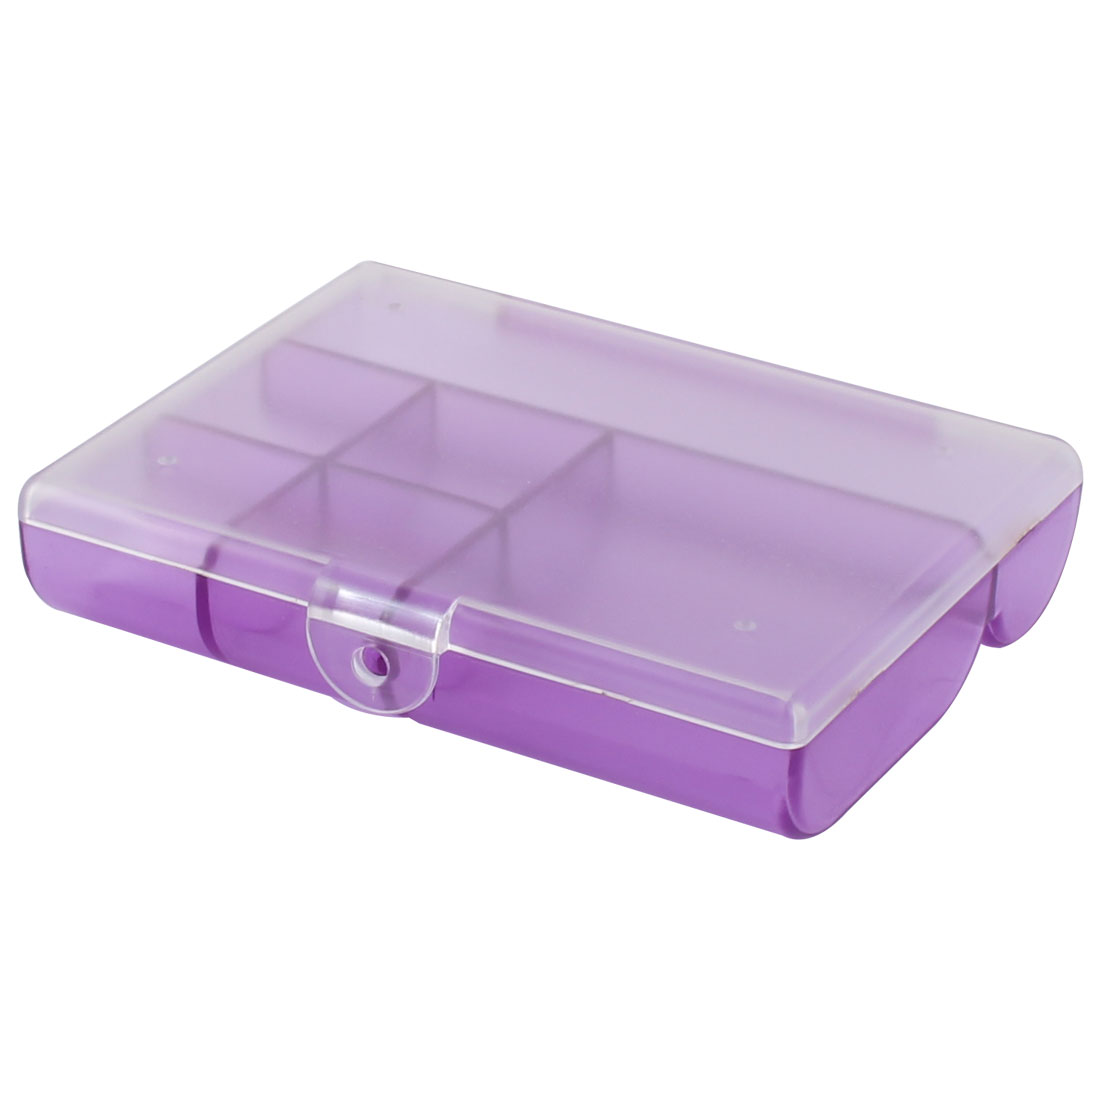 Home Plastic 6 Compartments Small Accessories Jewelry Box Organizer Holder Clear Purple